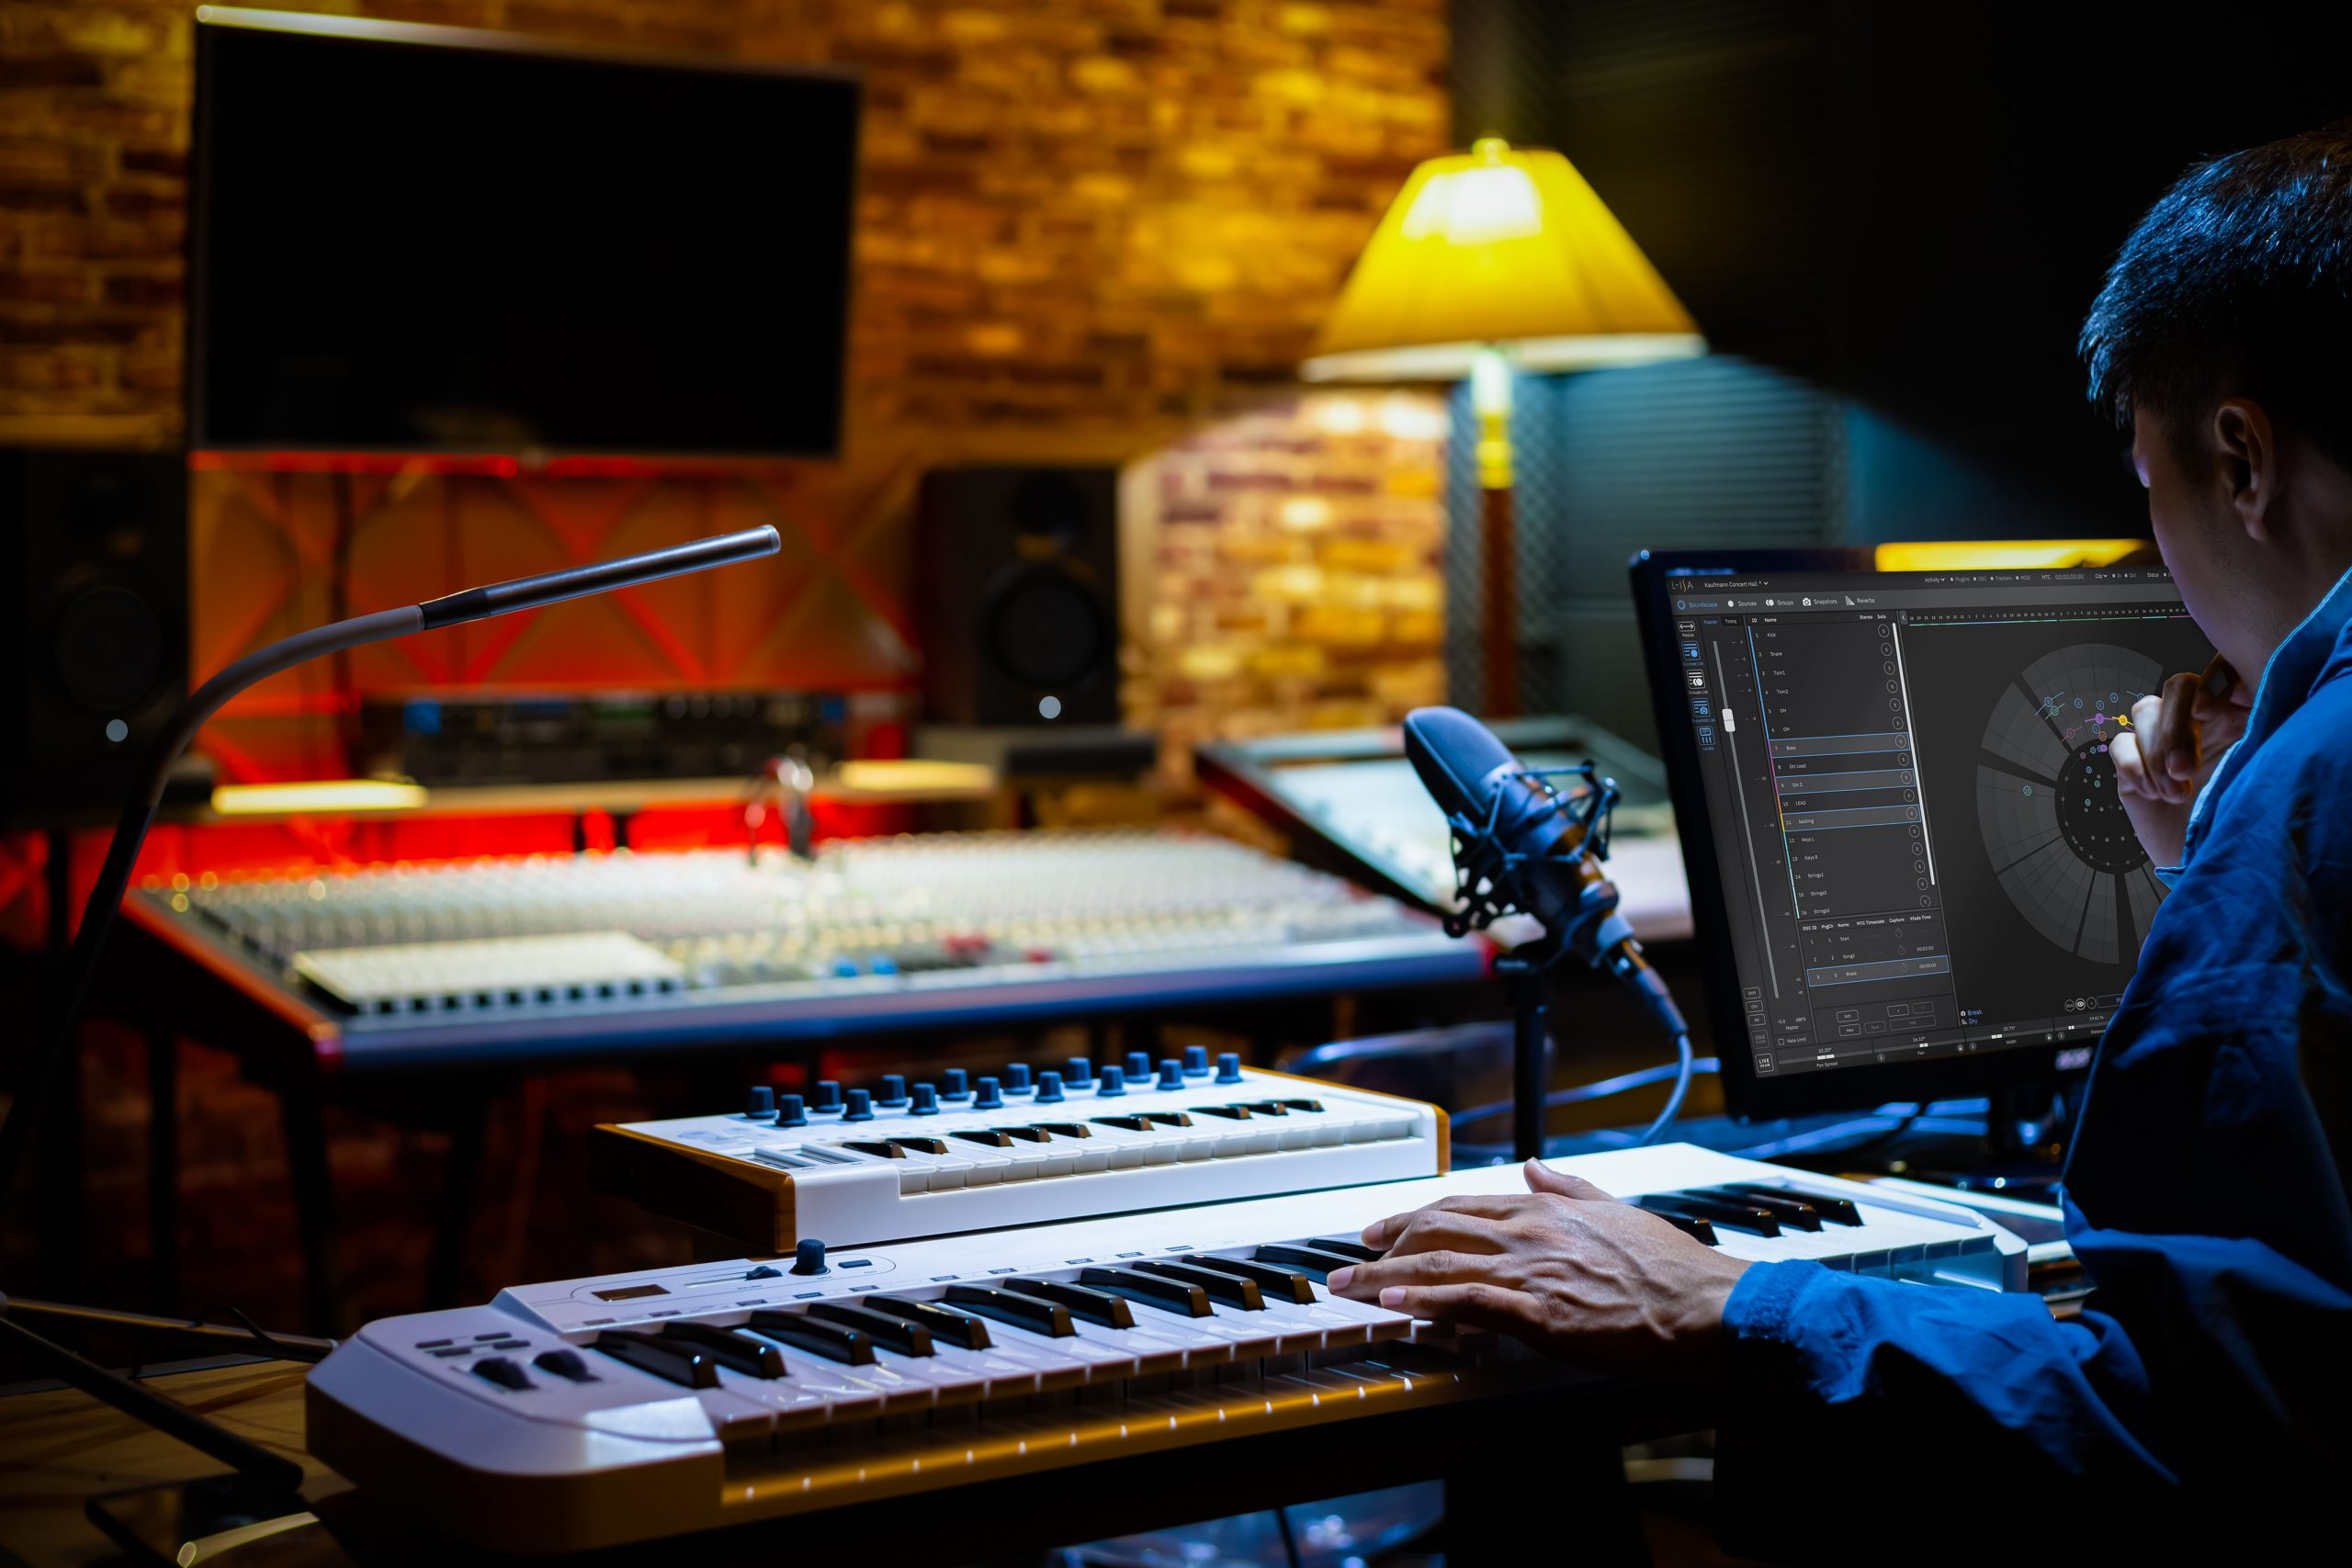 Create Spatial Audio Anytime, Anywhere with New L-ISA Studio featured image